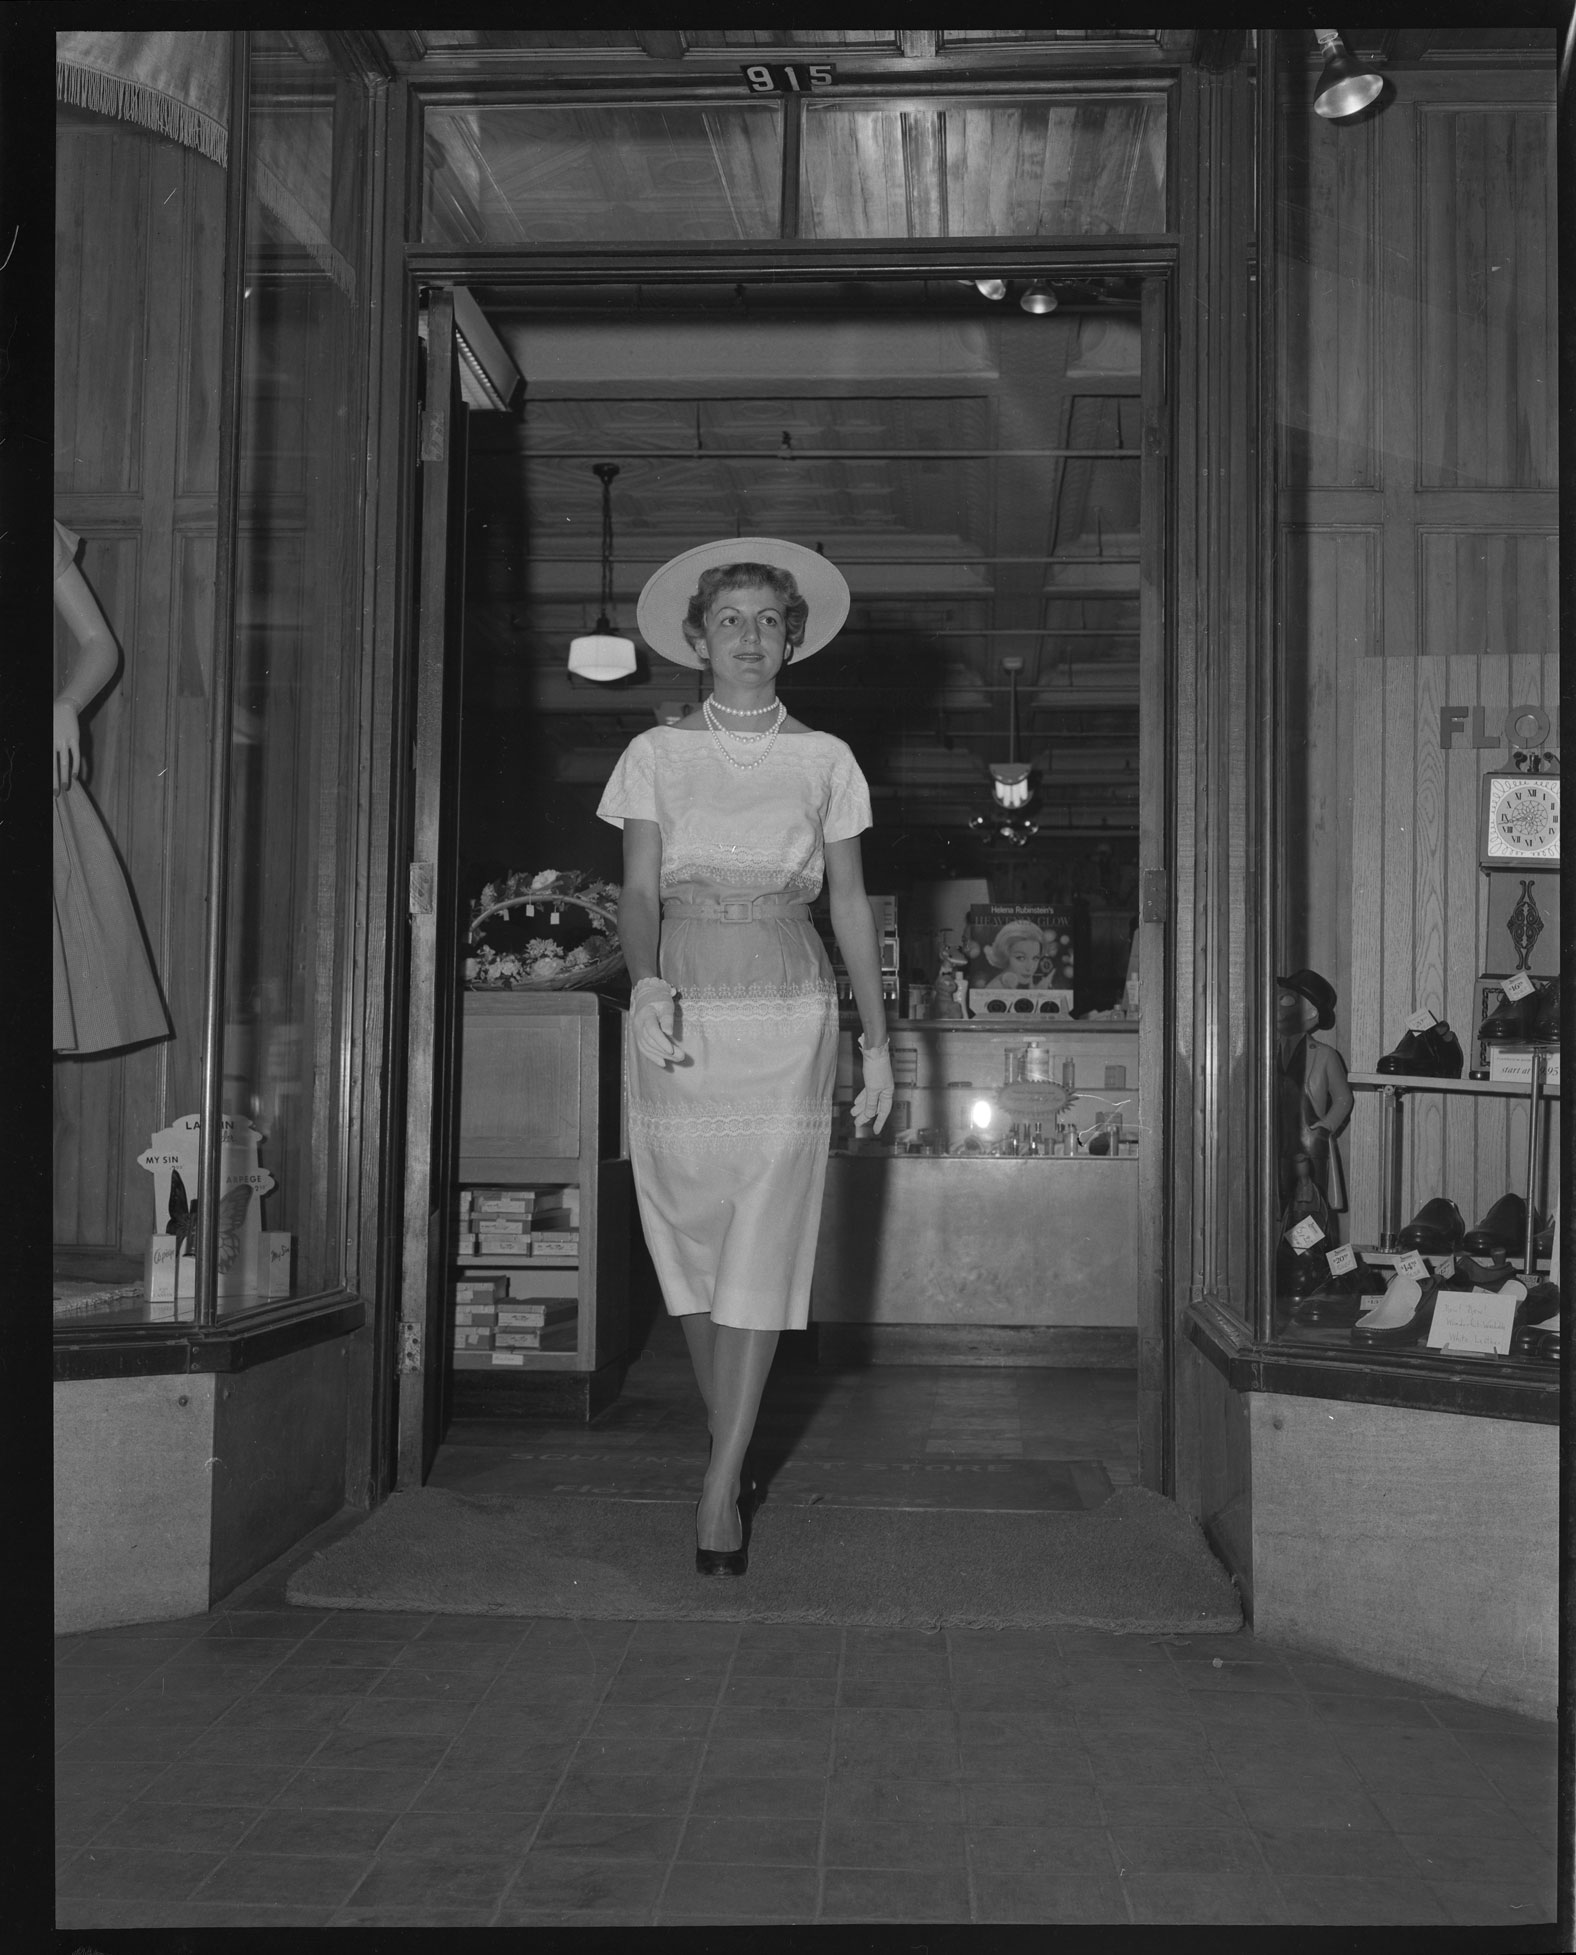 Modeling fashions at Schein's Department Store